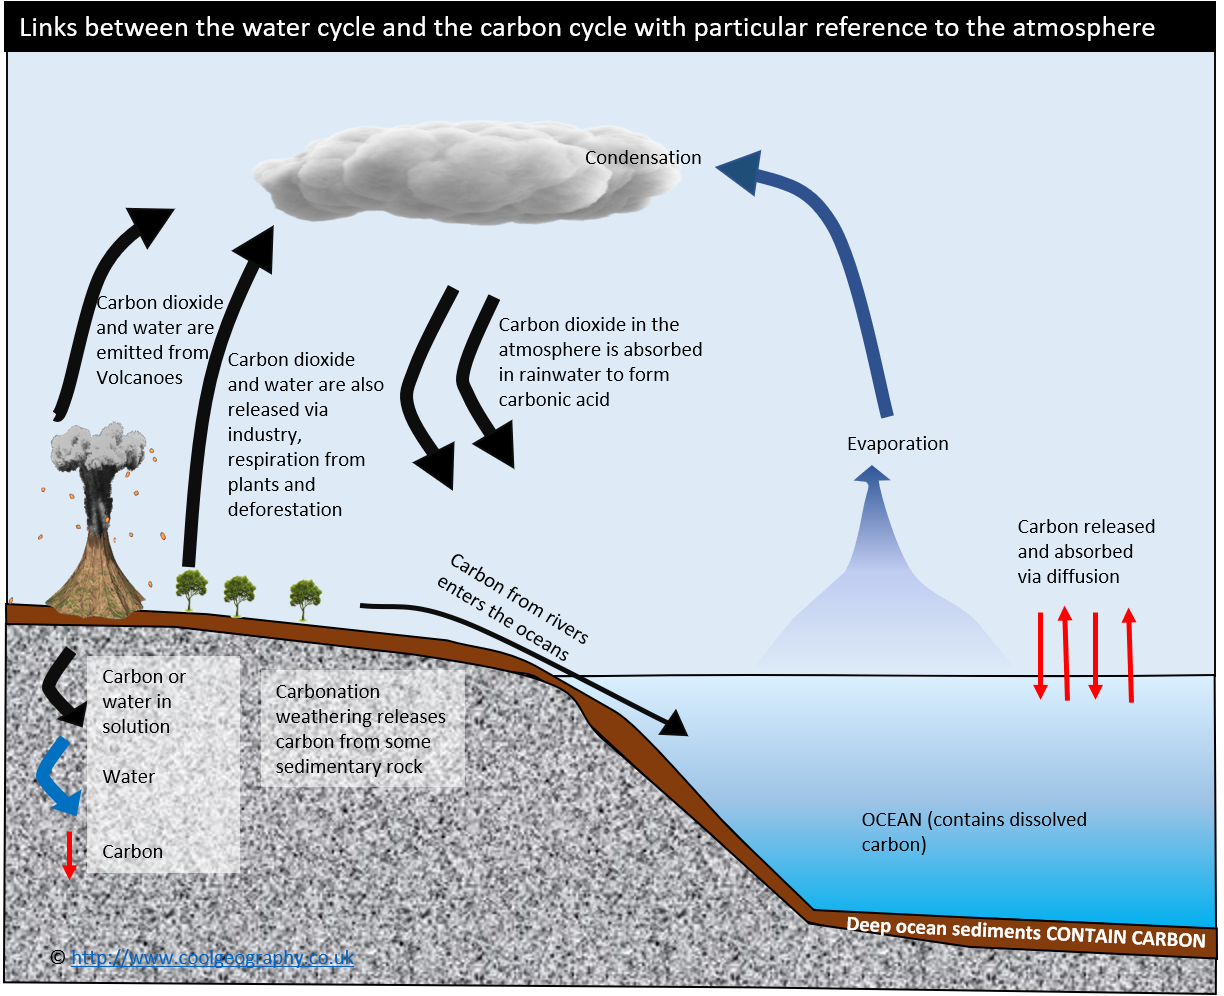 Water and carbon cycle links